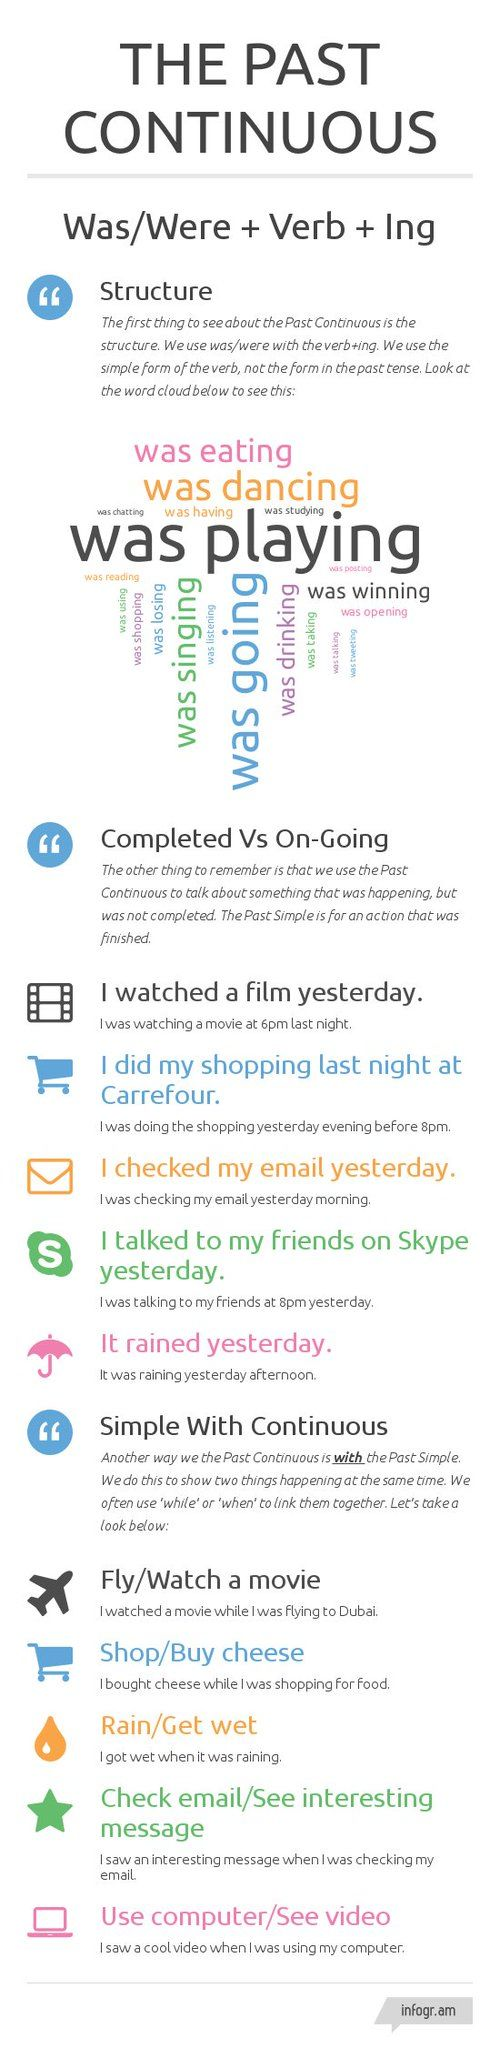 The Past Continuous: Was / Were + Verb + Ing #EnglishGrammar #Tenses @English4Matura